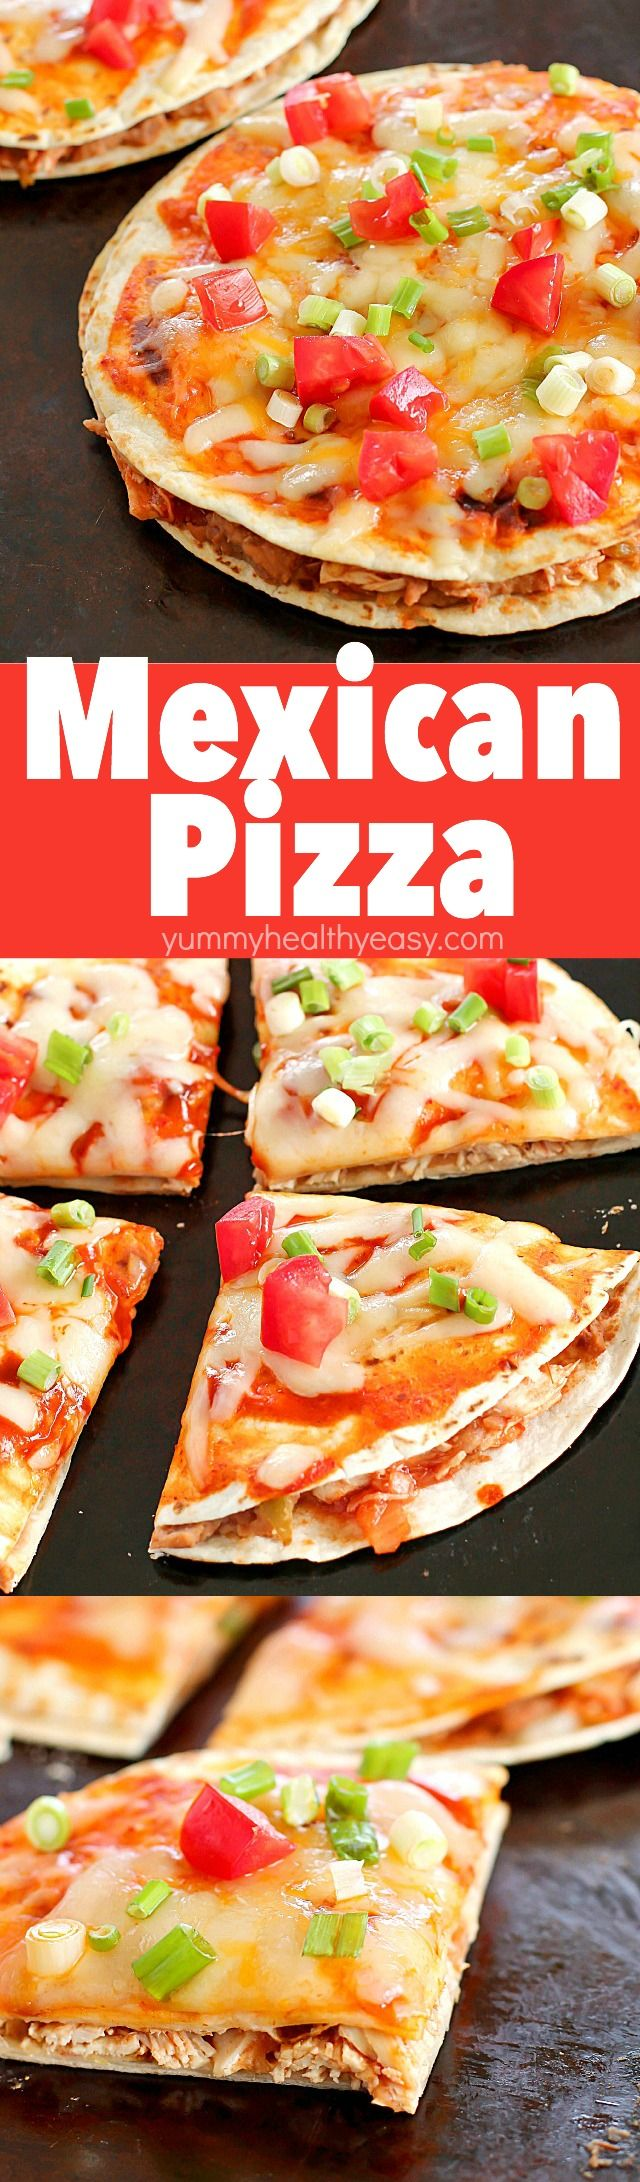 How about Mexican Pizzas for dinner? They're an easy, yummy recipe of layered flour tortillas with a filling of refried beans, shredded chicken and salsa. Top it off with a little enchilada sauce and cheese, bake for a few minutes, and you got yourself an incredible Mexican Pizza for dinner!